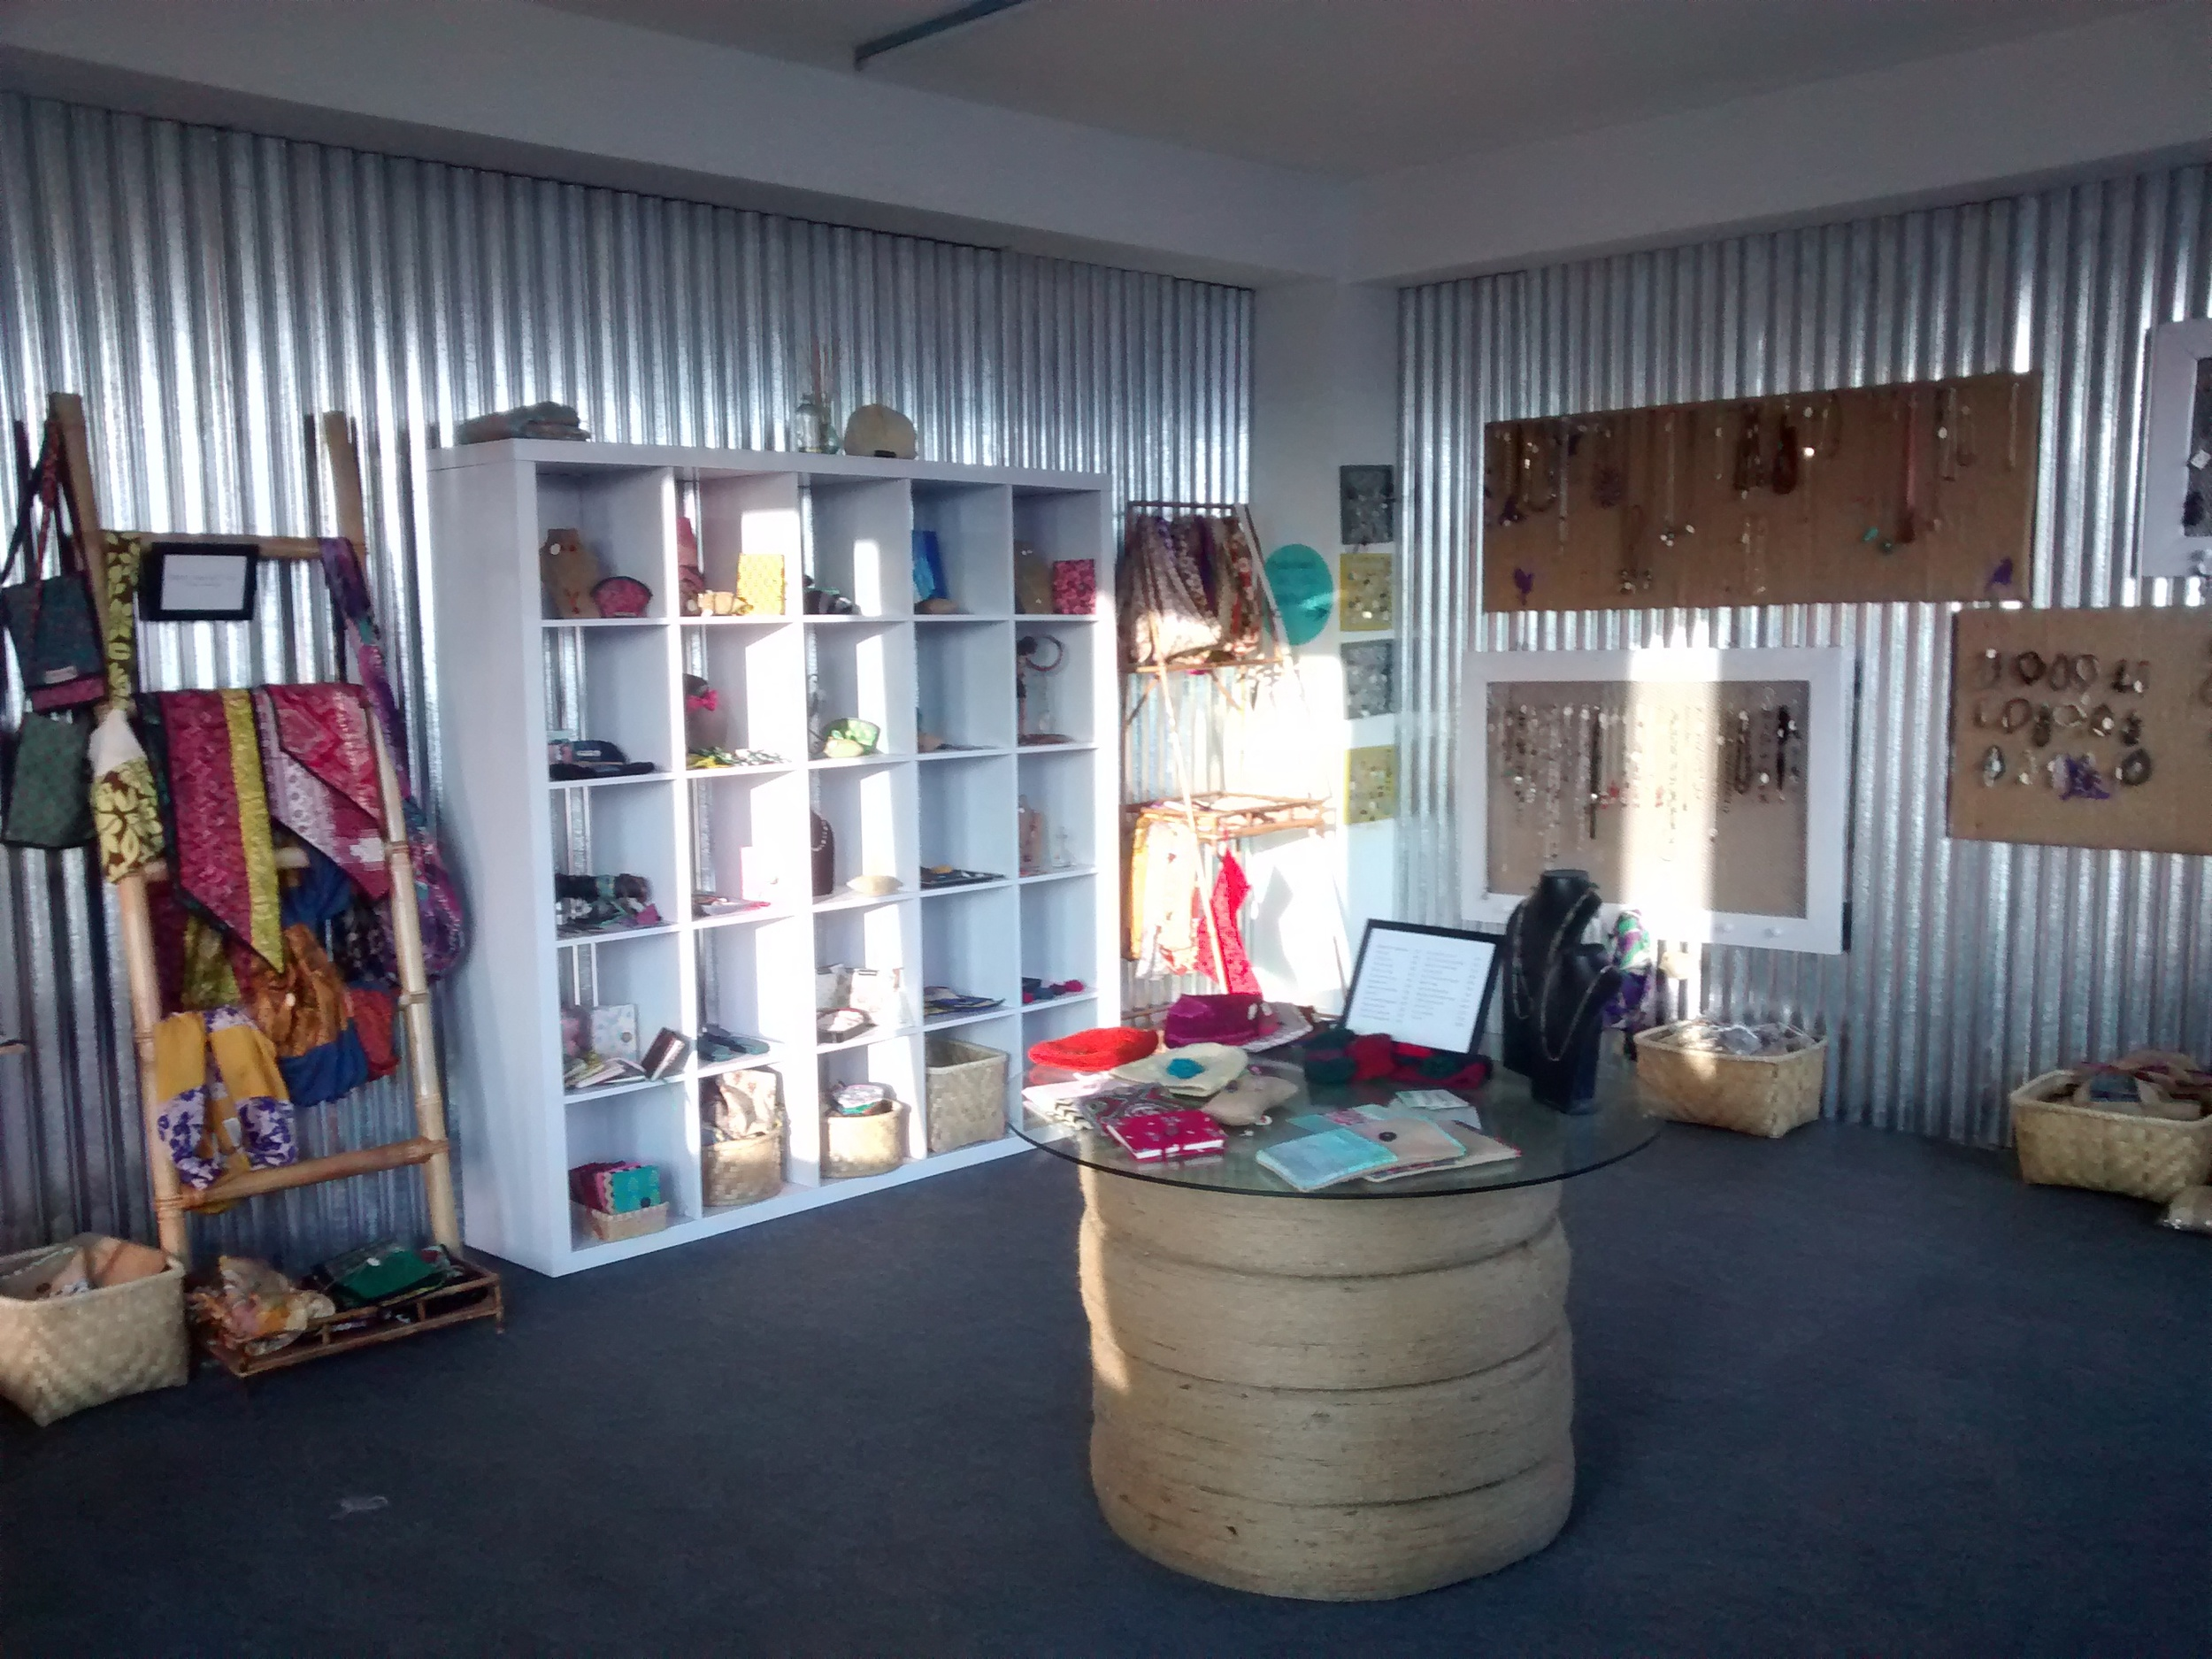 This is our showroom in Nepal. Benj built the walls in this room which is how Gwen initially got involved volunteering here.